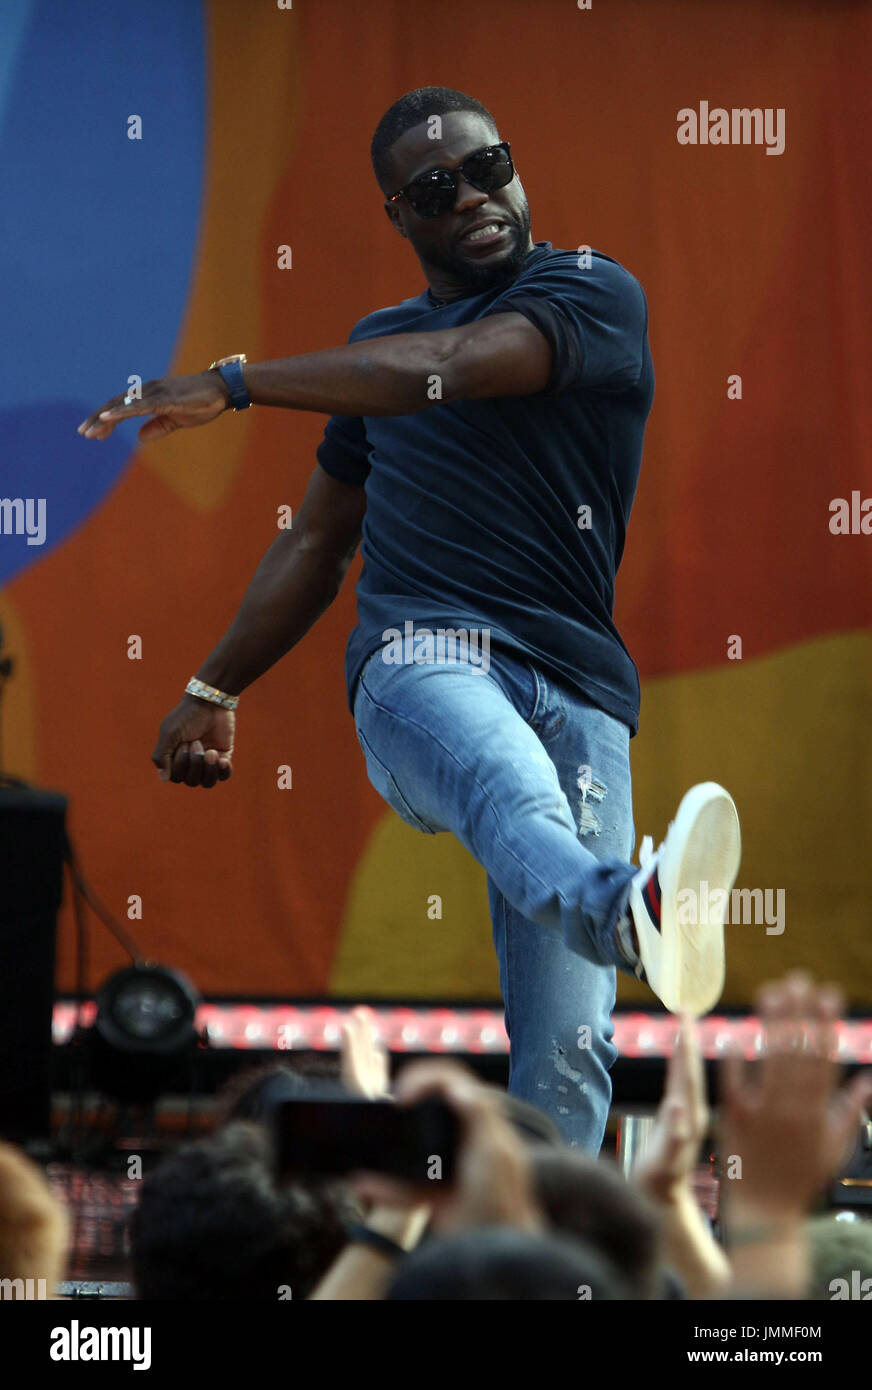 Nueva York, Nueva York, Estados Unidos. 28 de julio de 2017. El actor Kevin Hart patea una pelota de playa a la audiencia en 'Good Morning America' en Central Park. Crédito: Nancy Kaszerman/Zuma alambre/Alamy Live News Imagen De Stock